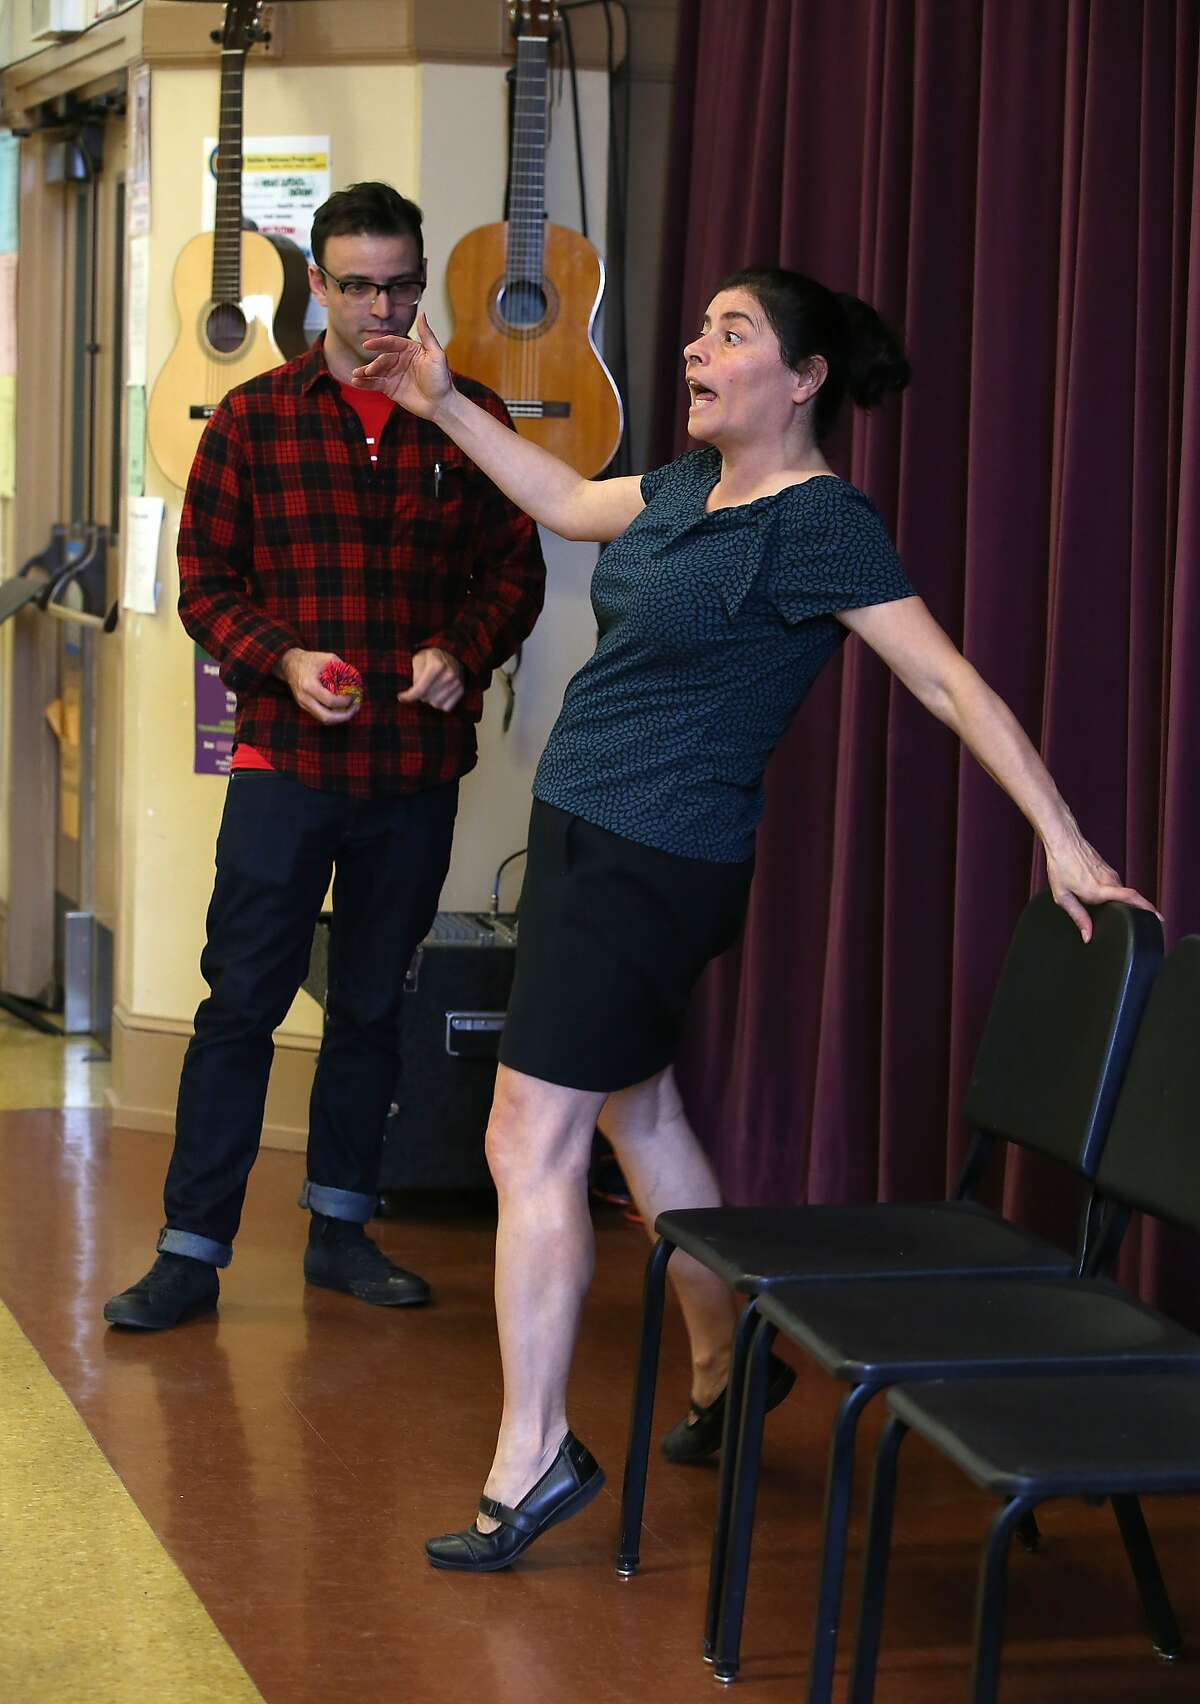 Artist in residence David Jacobs (back left) from A.C.T. and drama teacher Myrna Maroun (right) in the Little Theater at Galileo High School teaching students improvisation in San Francisco, California, on Thursday, February 25, 2016. They will both be co-directors in this semester's play.